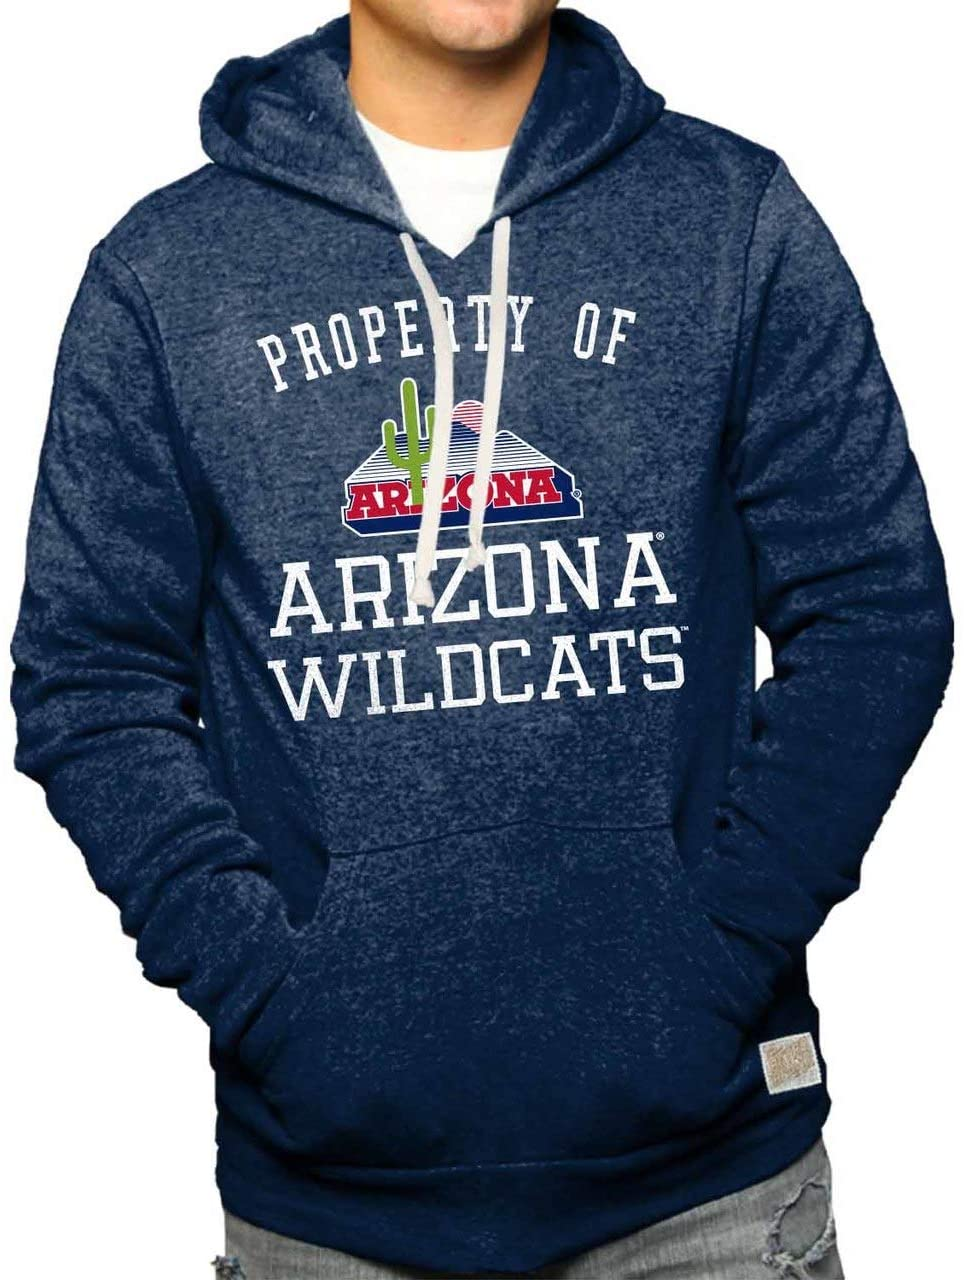 Original Retro Brand Arizona Wildcats Property of Tri-Blend Hooded Sweatshirt - Navy